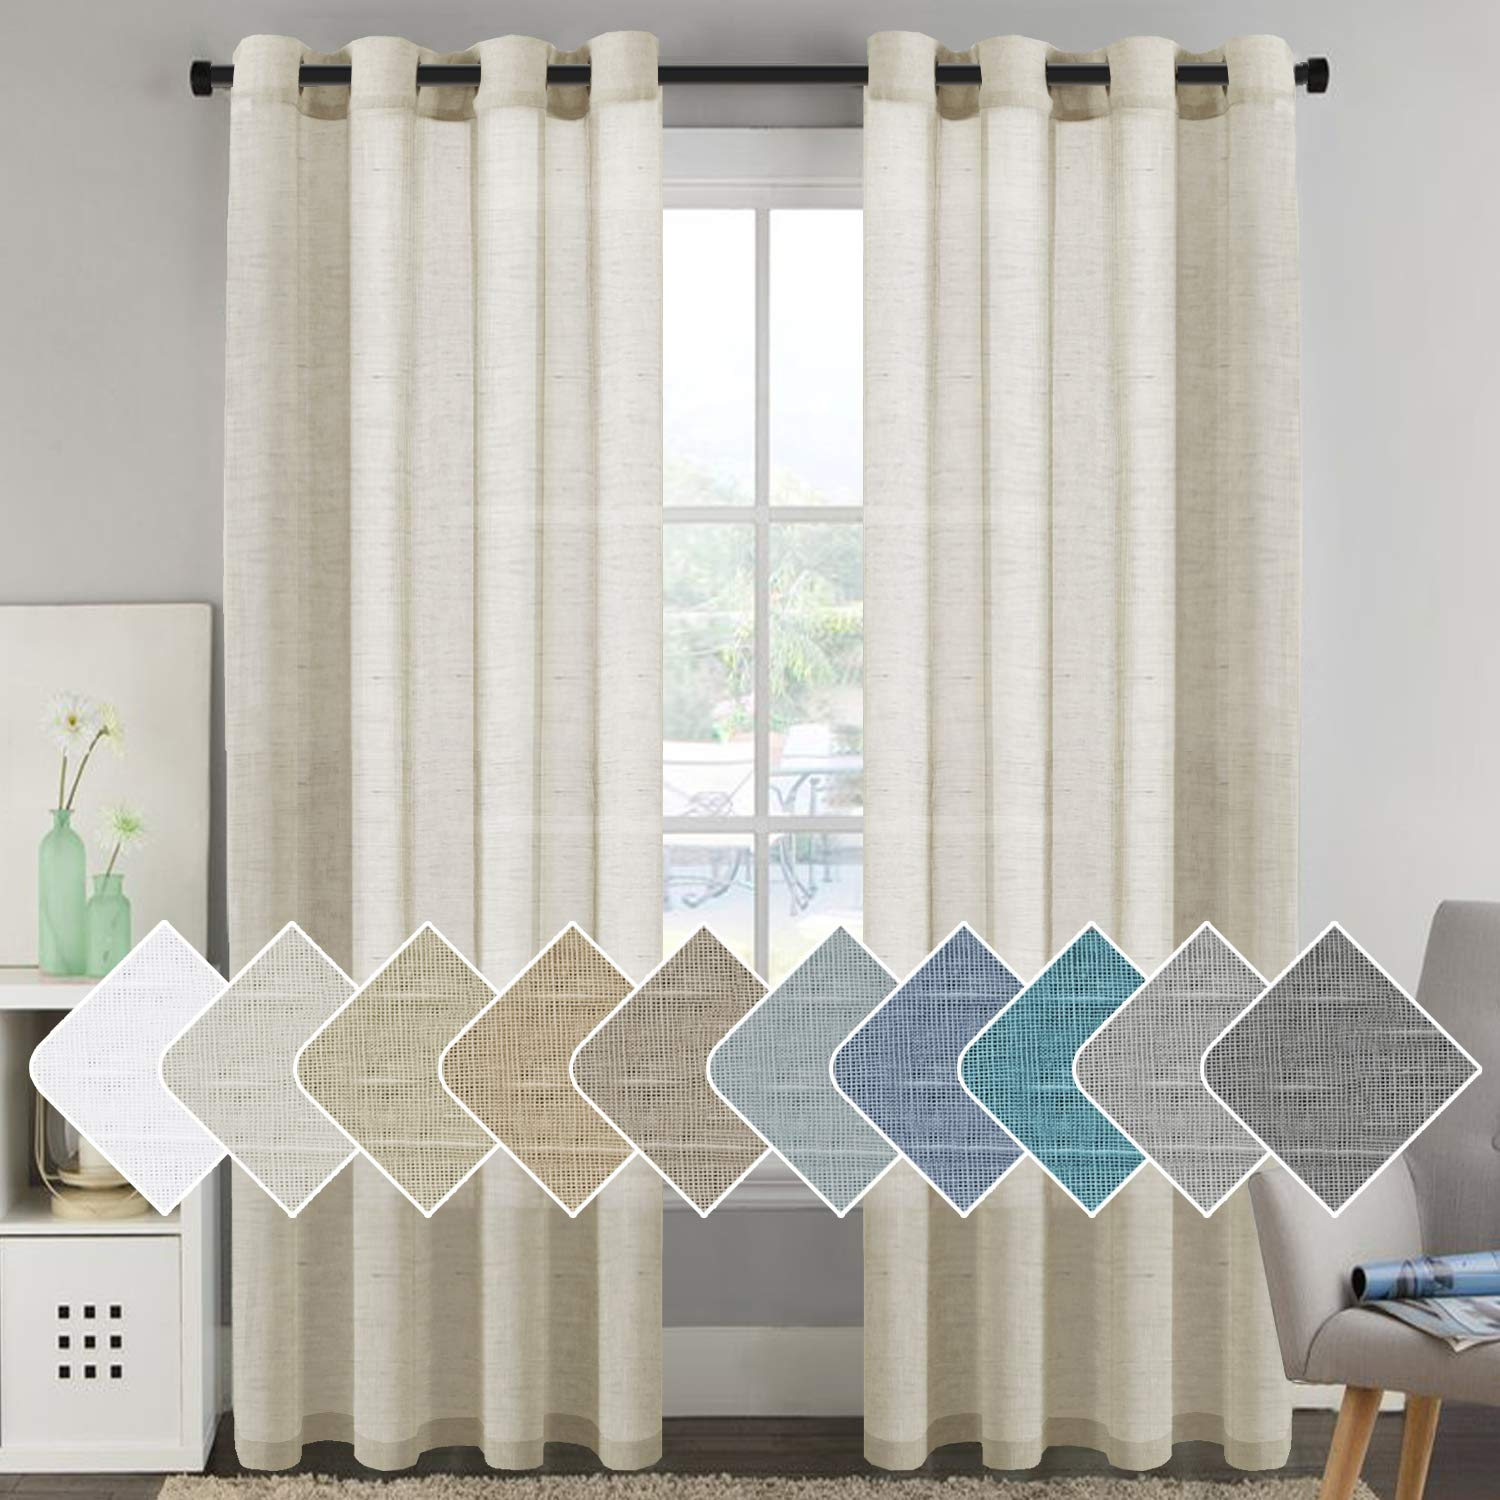 H.VERSAILTEX Home Decorative Privacy Window Treatment Linen Curtains/Natural Linen Blended Sheer Curtains/Panels/Drapes, Nickel Grommets, Natural Color, 96 Inches Long Living Room Curtains by H.VERSAILTEX